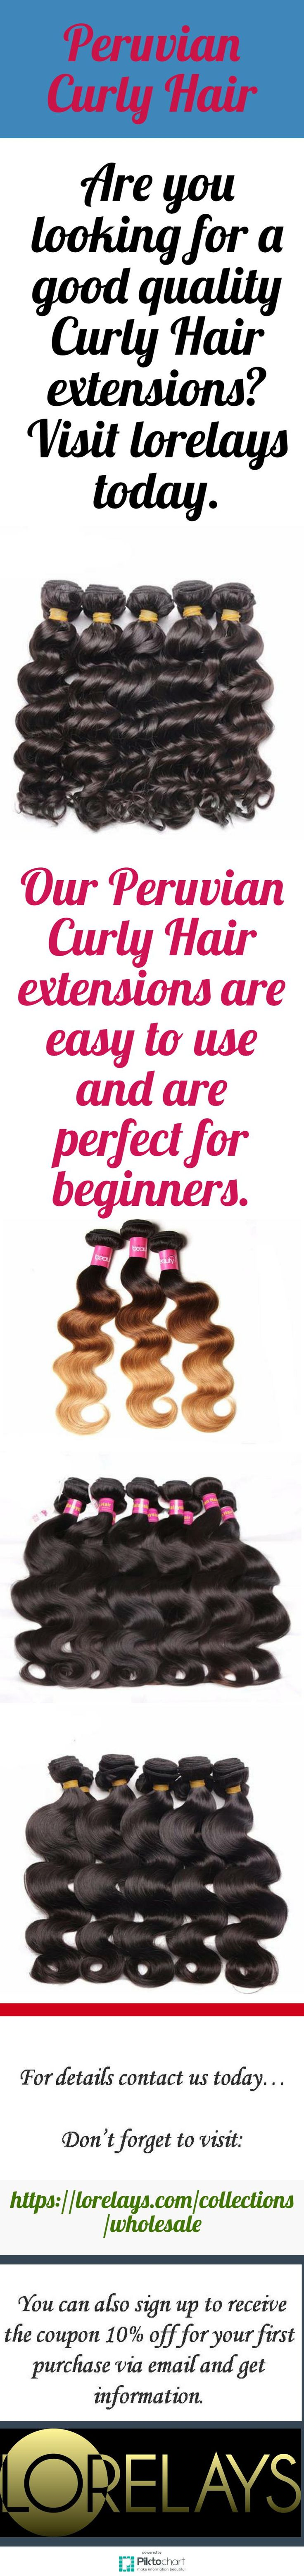 Visit Lorelays for Peruvian Curly Hair extensions. Our Peruvian Curly Hair extensions can offer the great solution to your hair woes. Visit website for details: https://lorelays.com/collections/wholesale